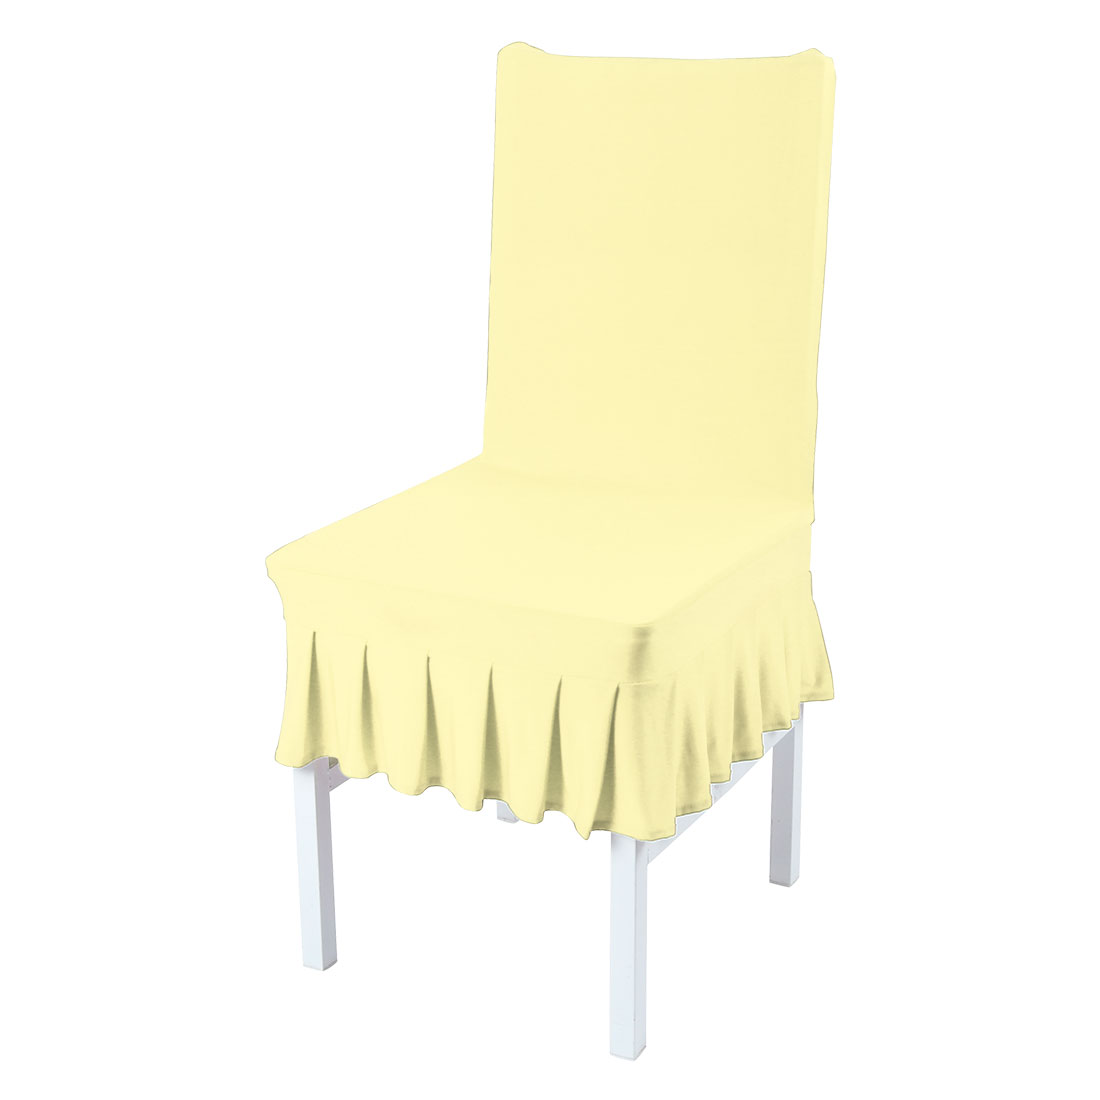 stretch dining chair covers mickey mouse piccocasa spandex protector seat slipcover light yellow walmart com